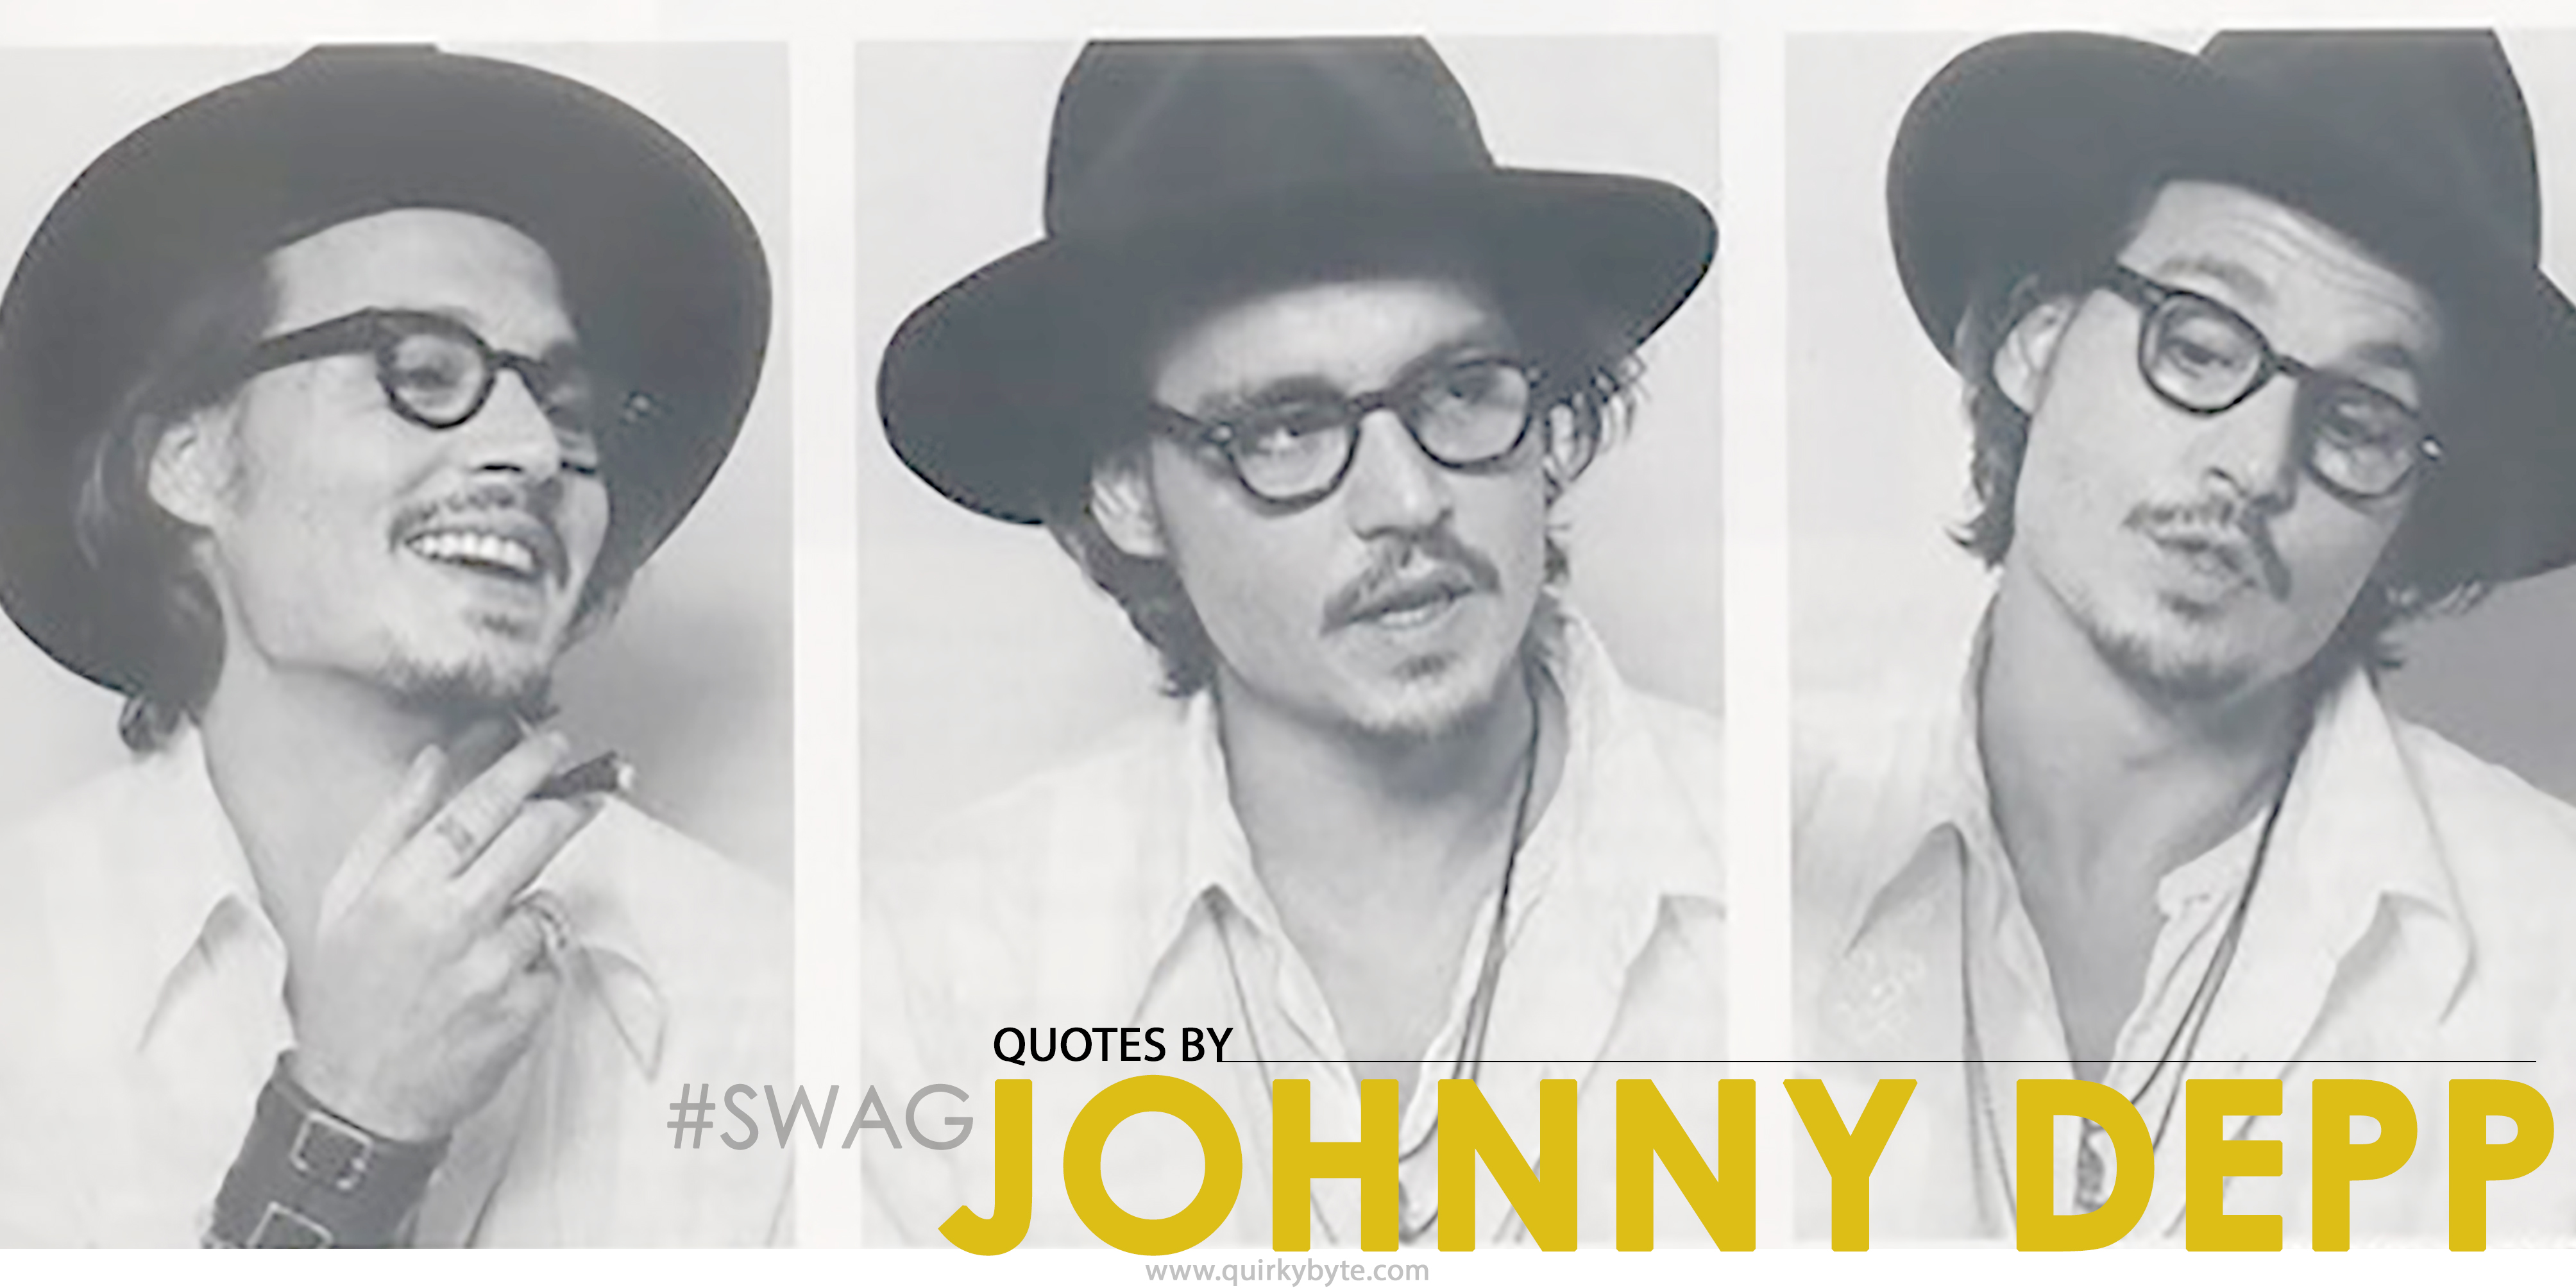 Photo of 5 Whacky Life Quotes by Johnny Depp